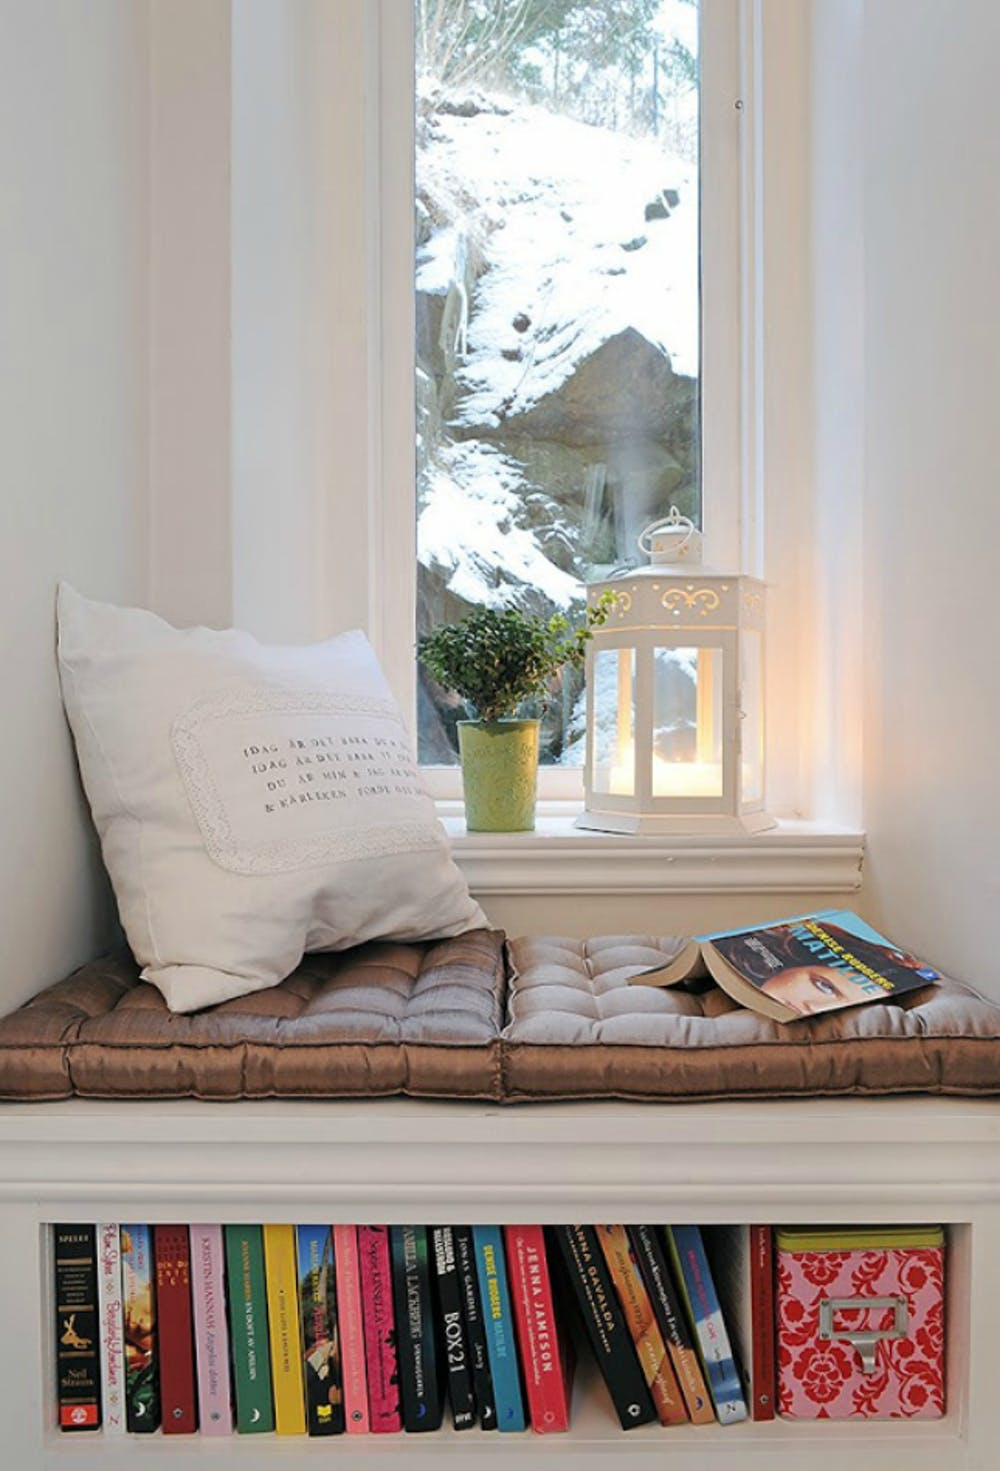 Hygge window seat idea tufted pillow seats in brown white throw pillow under bookcase lantern